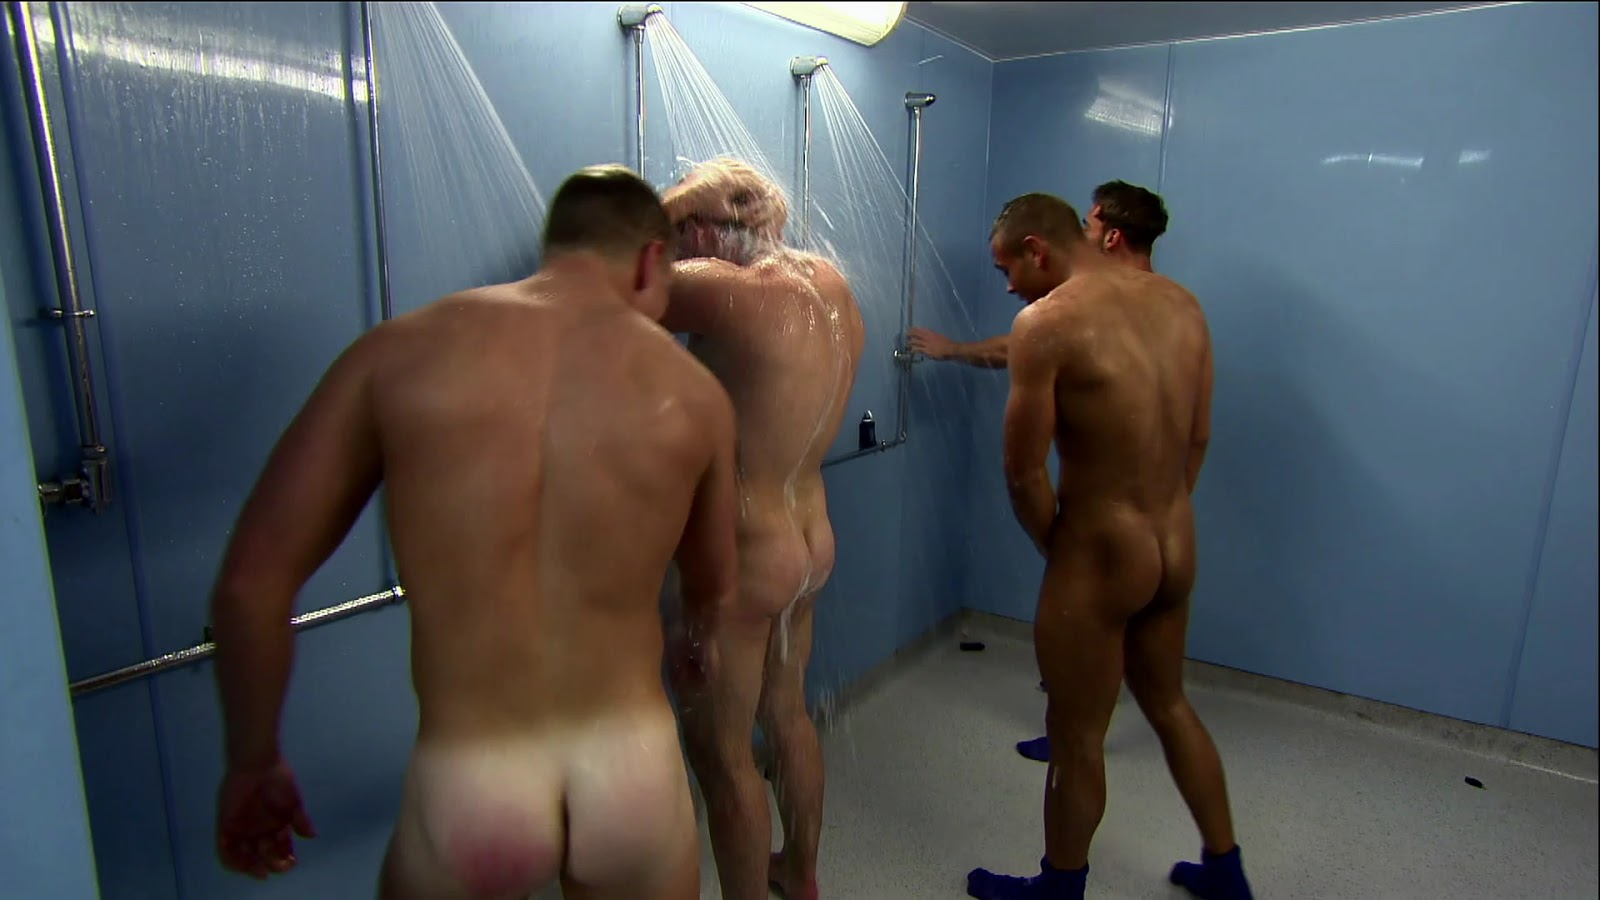 My own private locker room naked lads in sauna